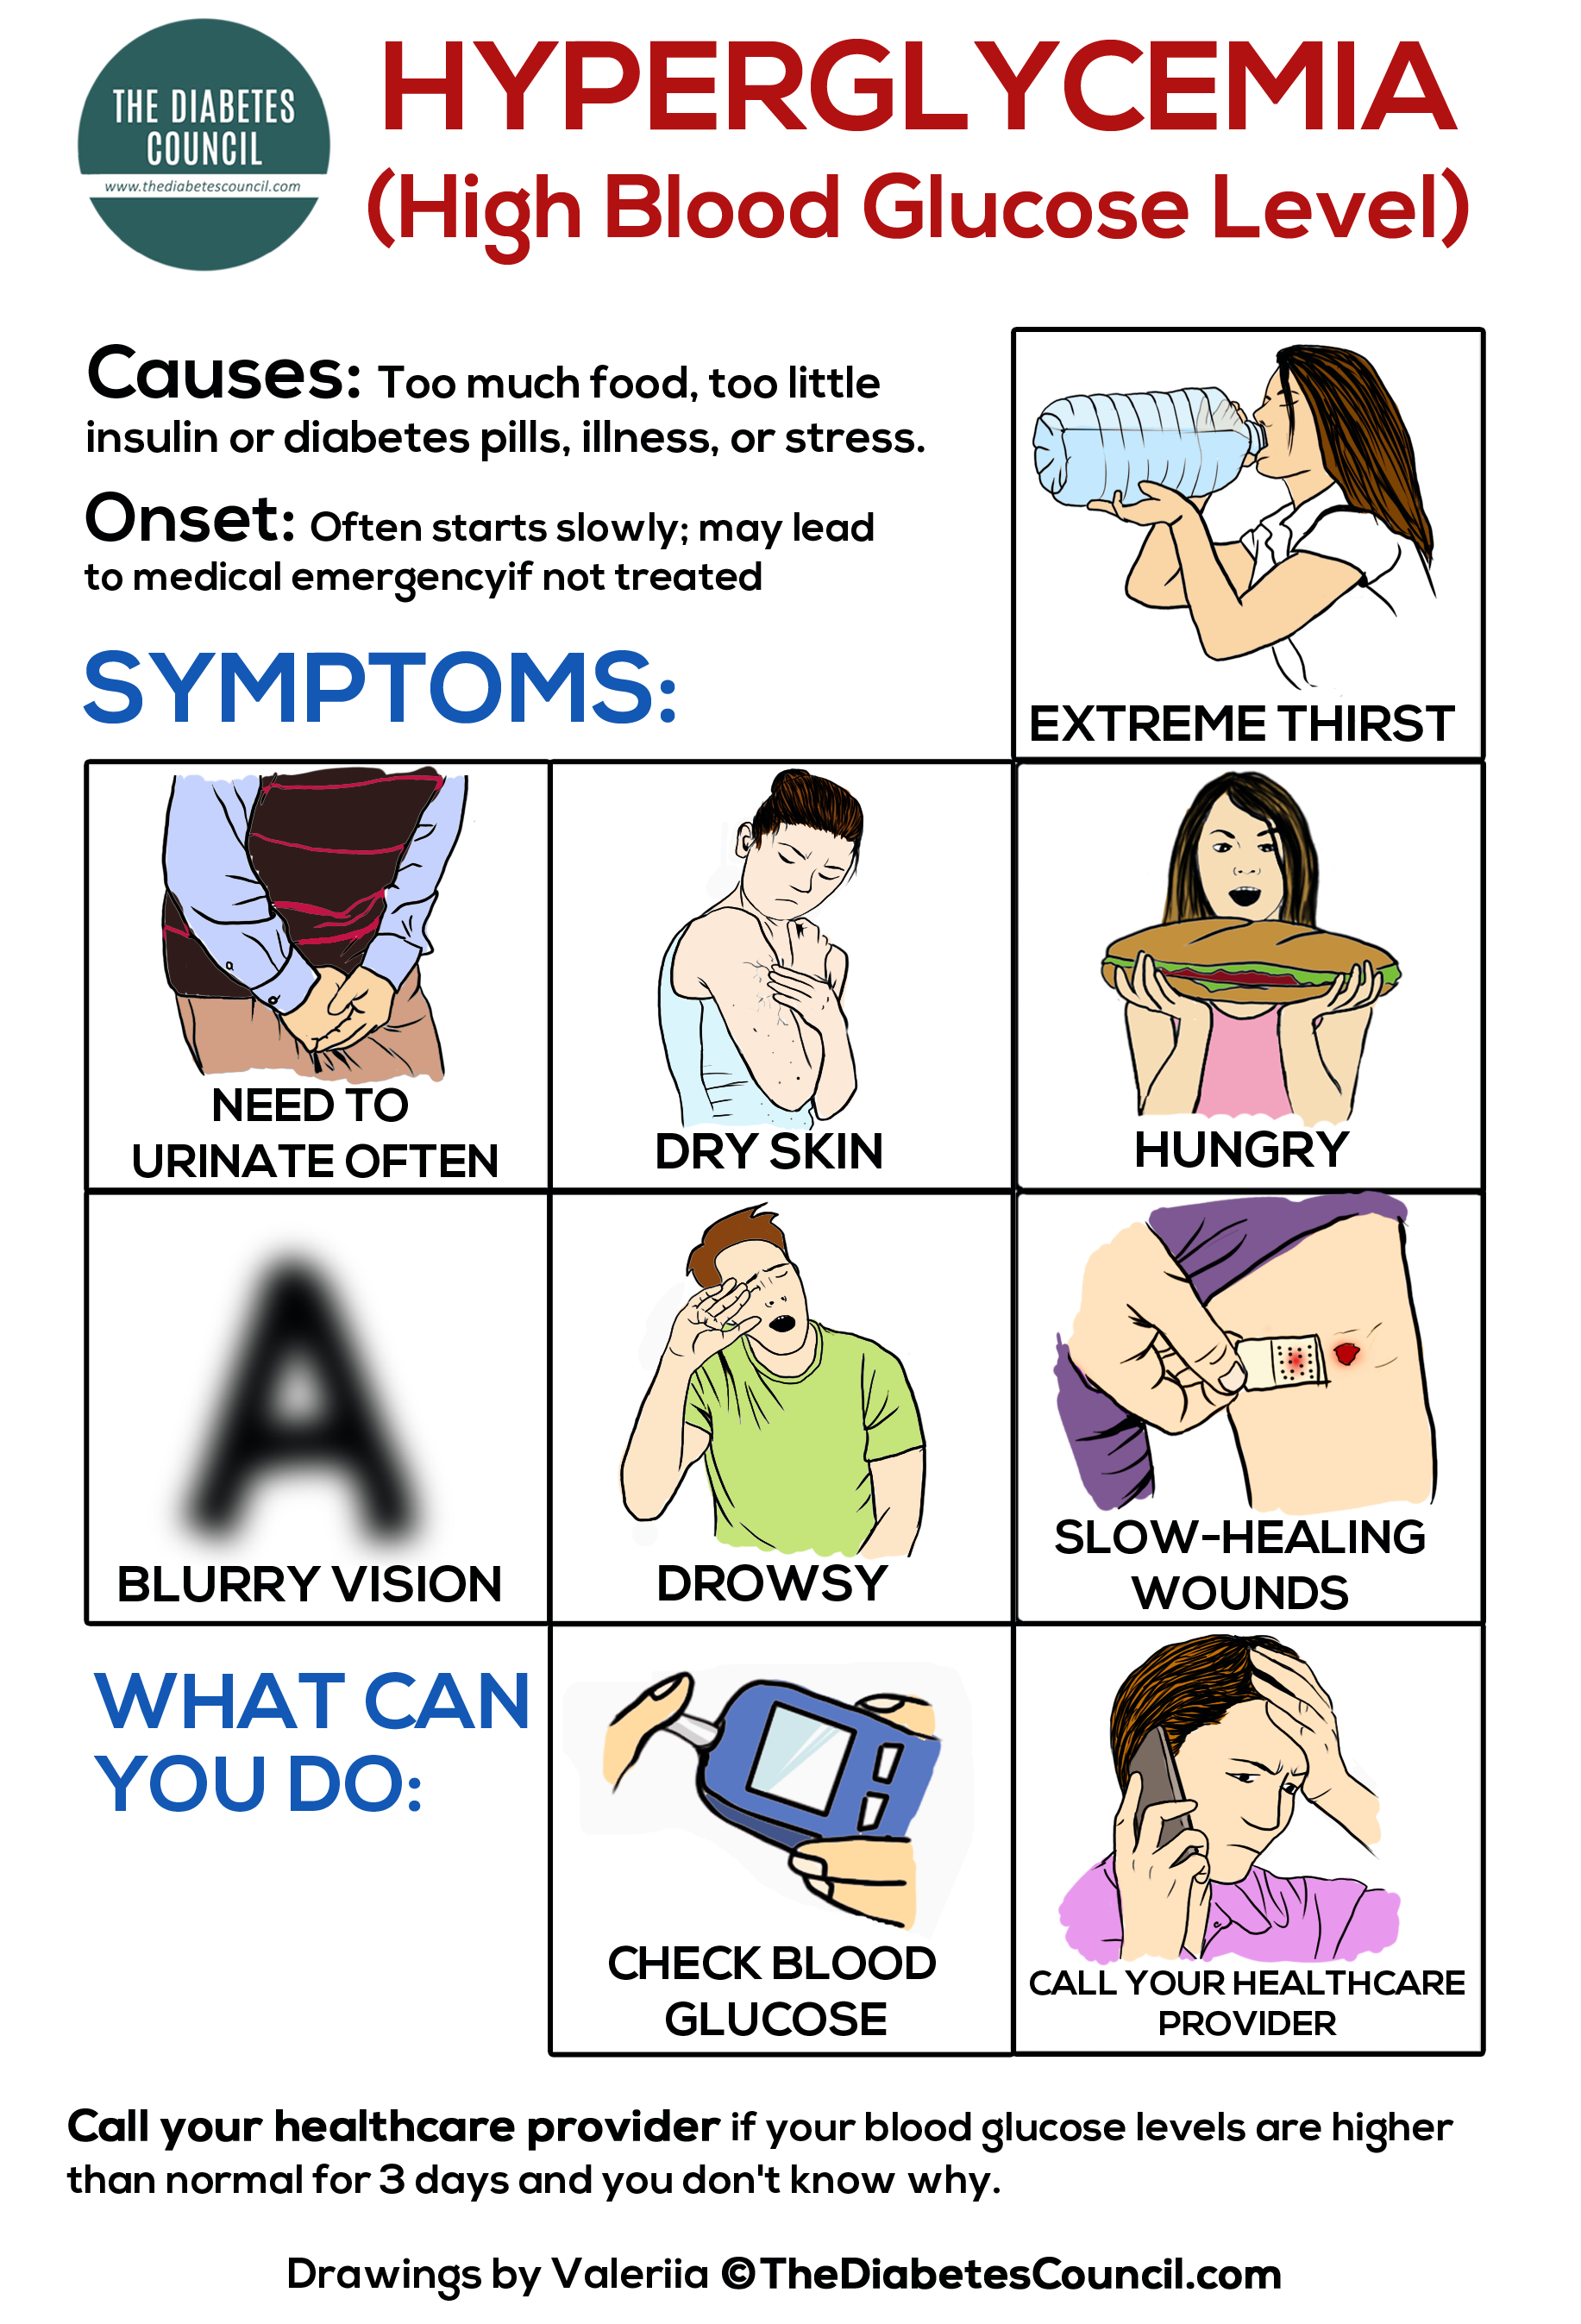 According to the Physicians Committee for Responsible Medicine, some effects of hypoglycemia, also known as insulin shock -- include shakiness, weakness, faintness, headaches, mental dullness, and confusion. Test your blood glucose frequently and wear a glucose monitor to keep your levels on point. Know your medications. Test your blood sugar again, then eat another protein-rich snack 15 minutes later to stabilize it. The PCRM recommends more than thre